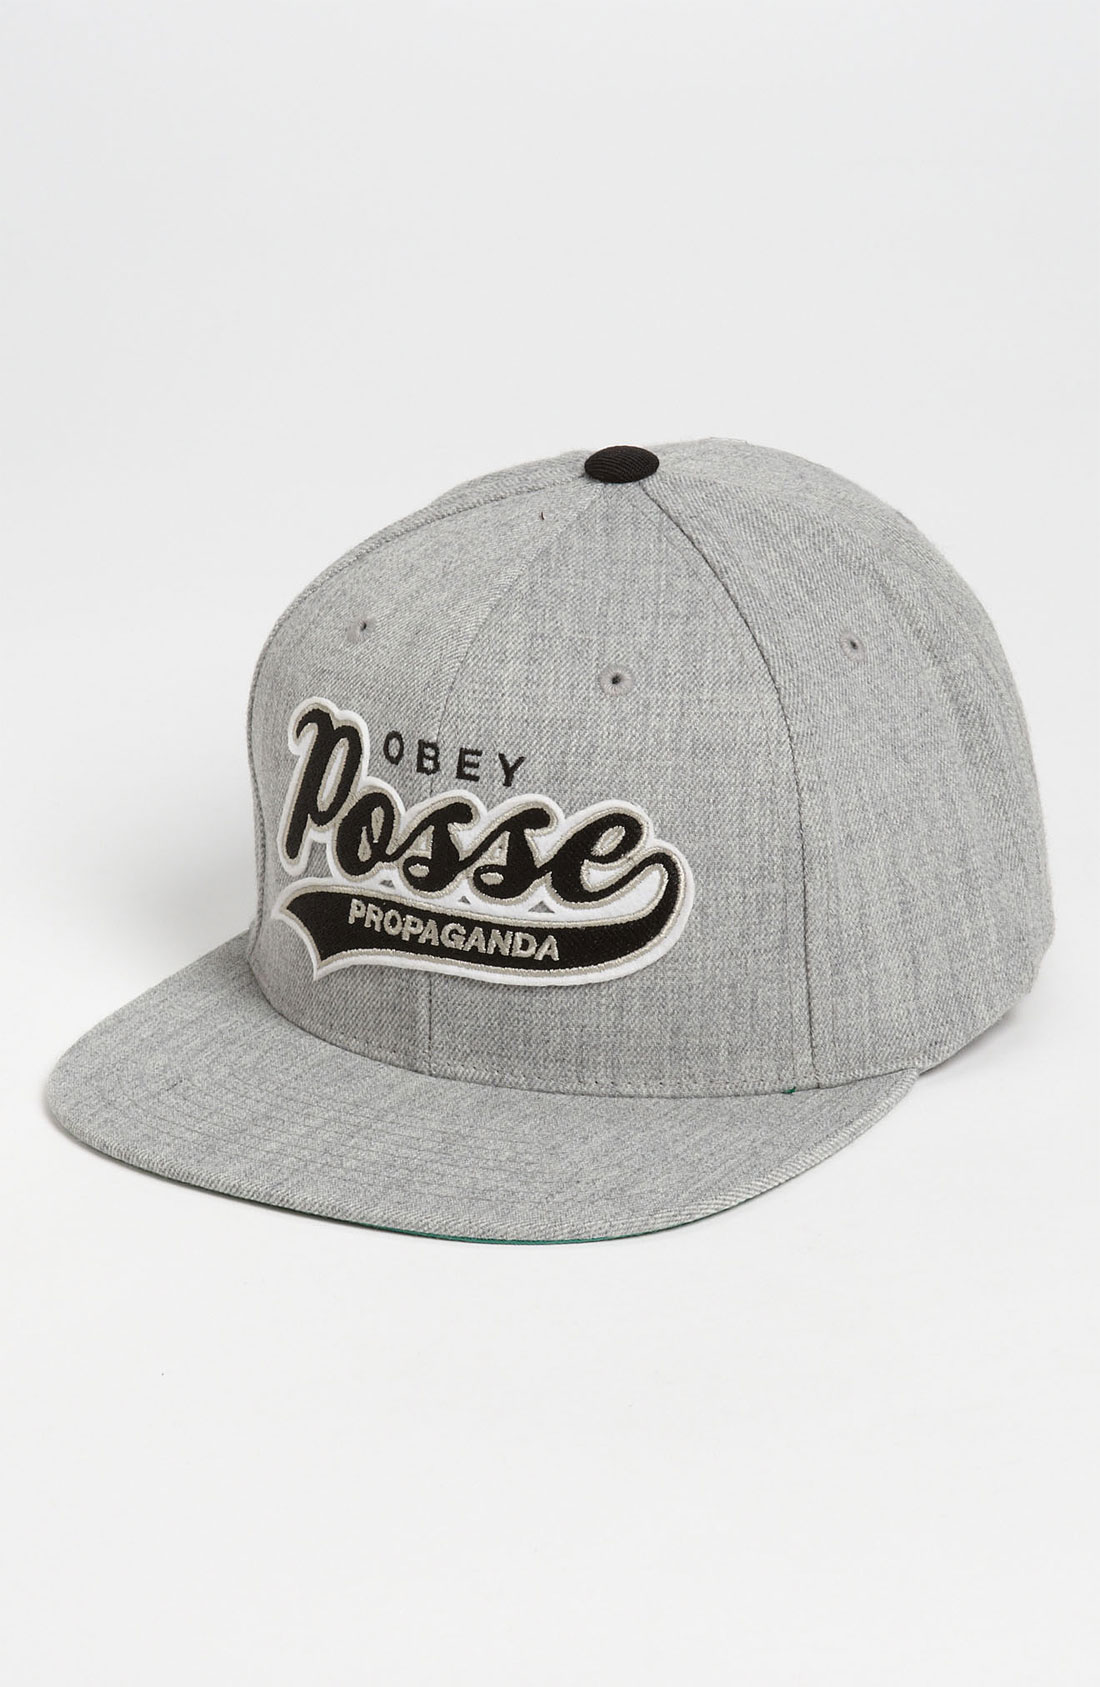 obey original on deck snapback baseball cap in gray for